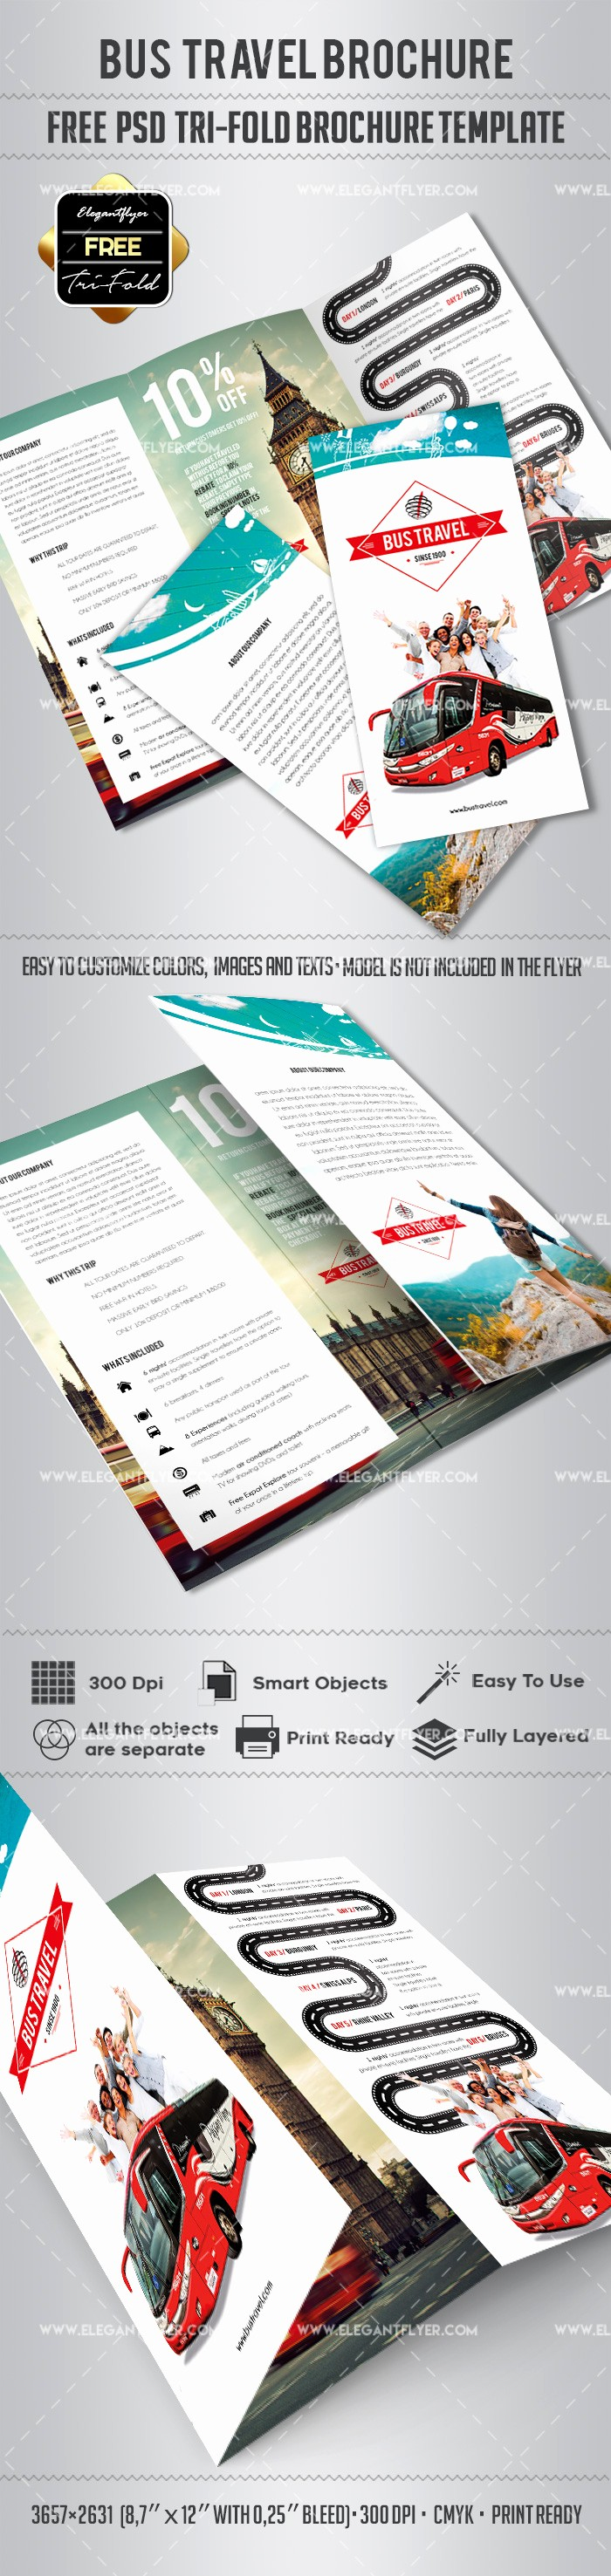 Tri Fold Travel Brochure Examples Unique Free – Bus Travel Tri Fold Psd Brochure Template – by